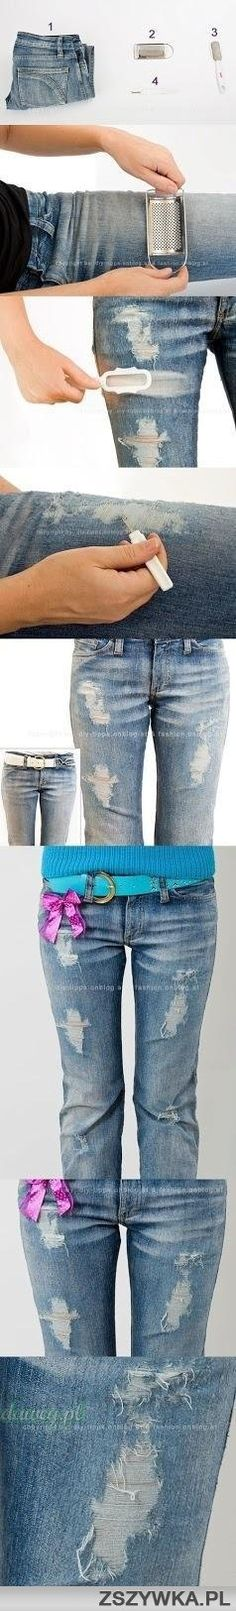 If I ever catch my mites doing this to jeans I bought them, they'll spend the rest of their minor years in dove shorts and suspenders.